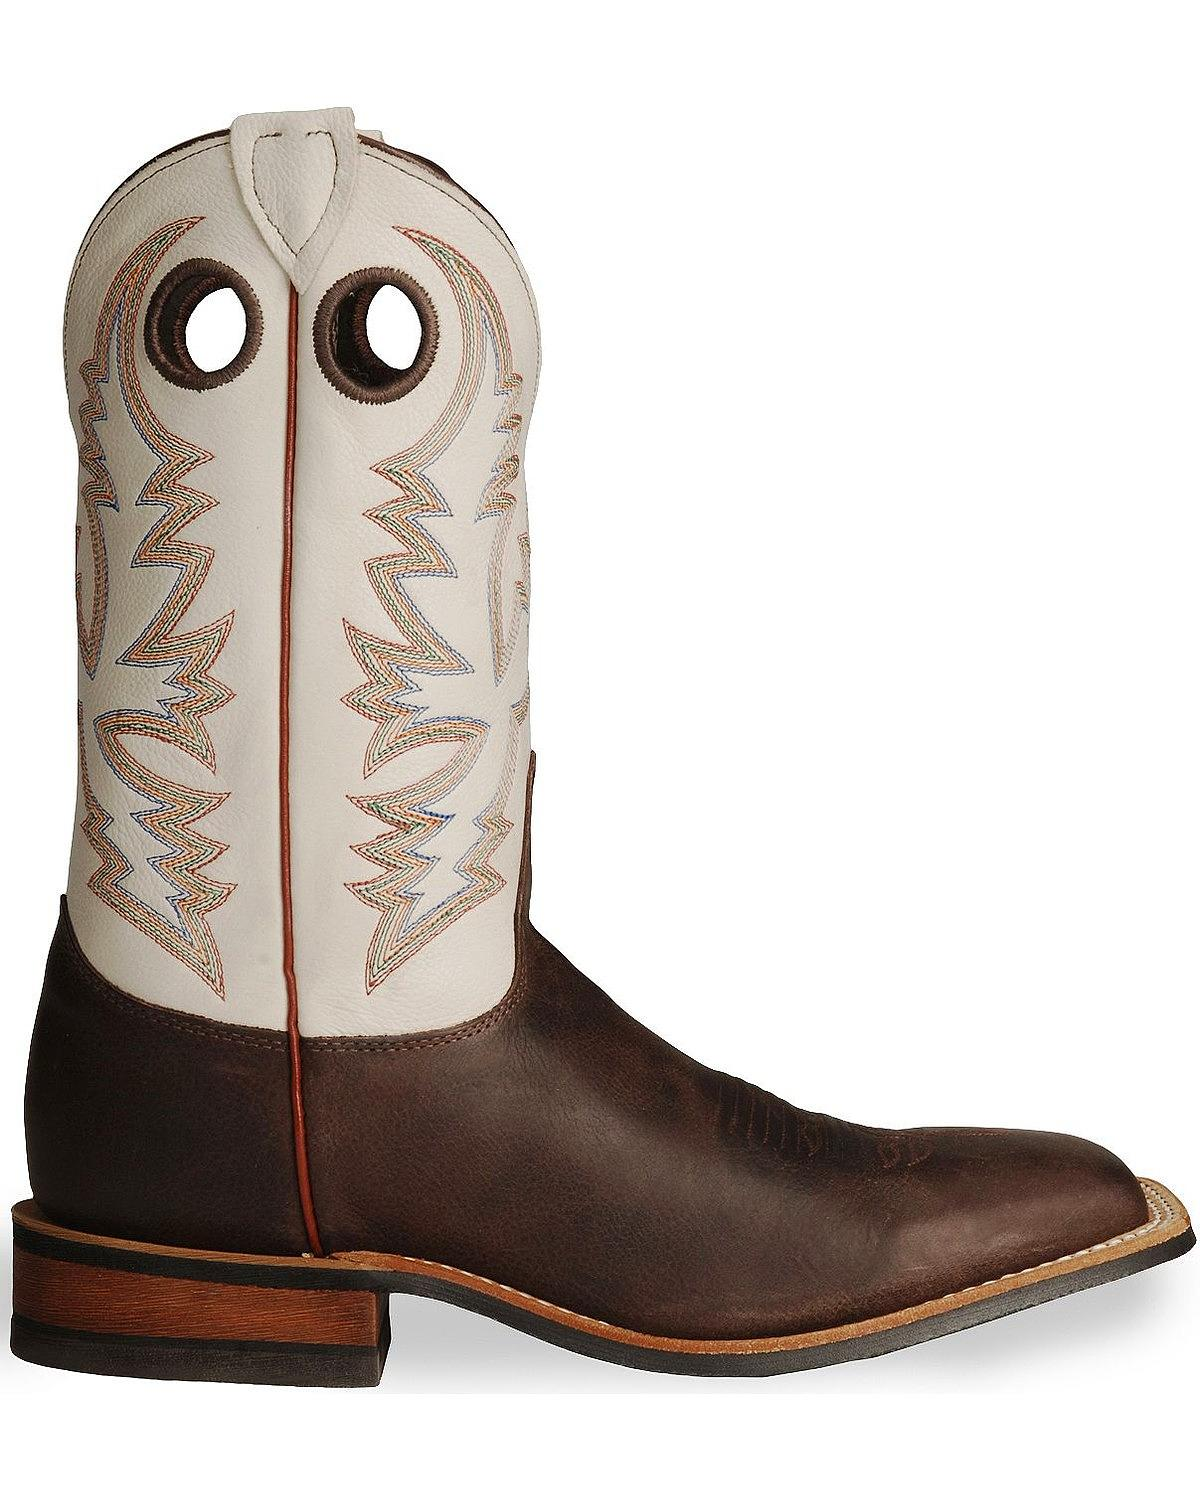 Perfect Justin Boots Stampede Punchy Cowboy Boots - Leather Square Toe (For Women) - Save 33%